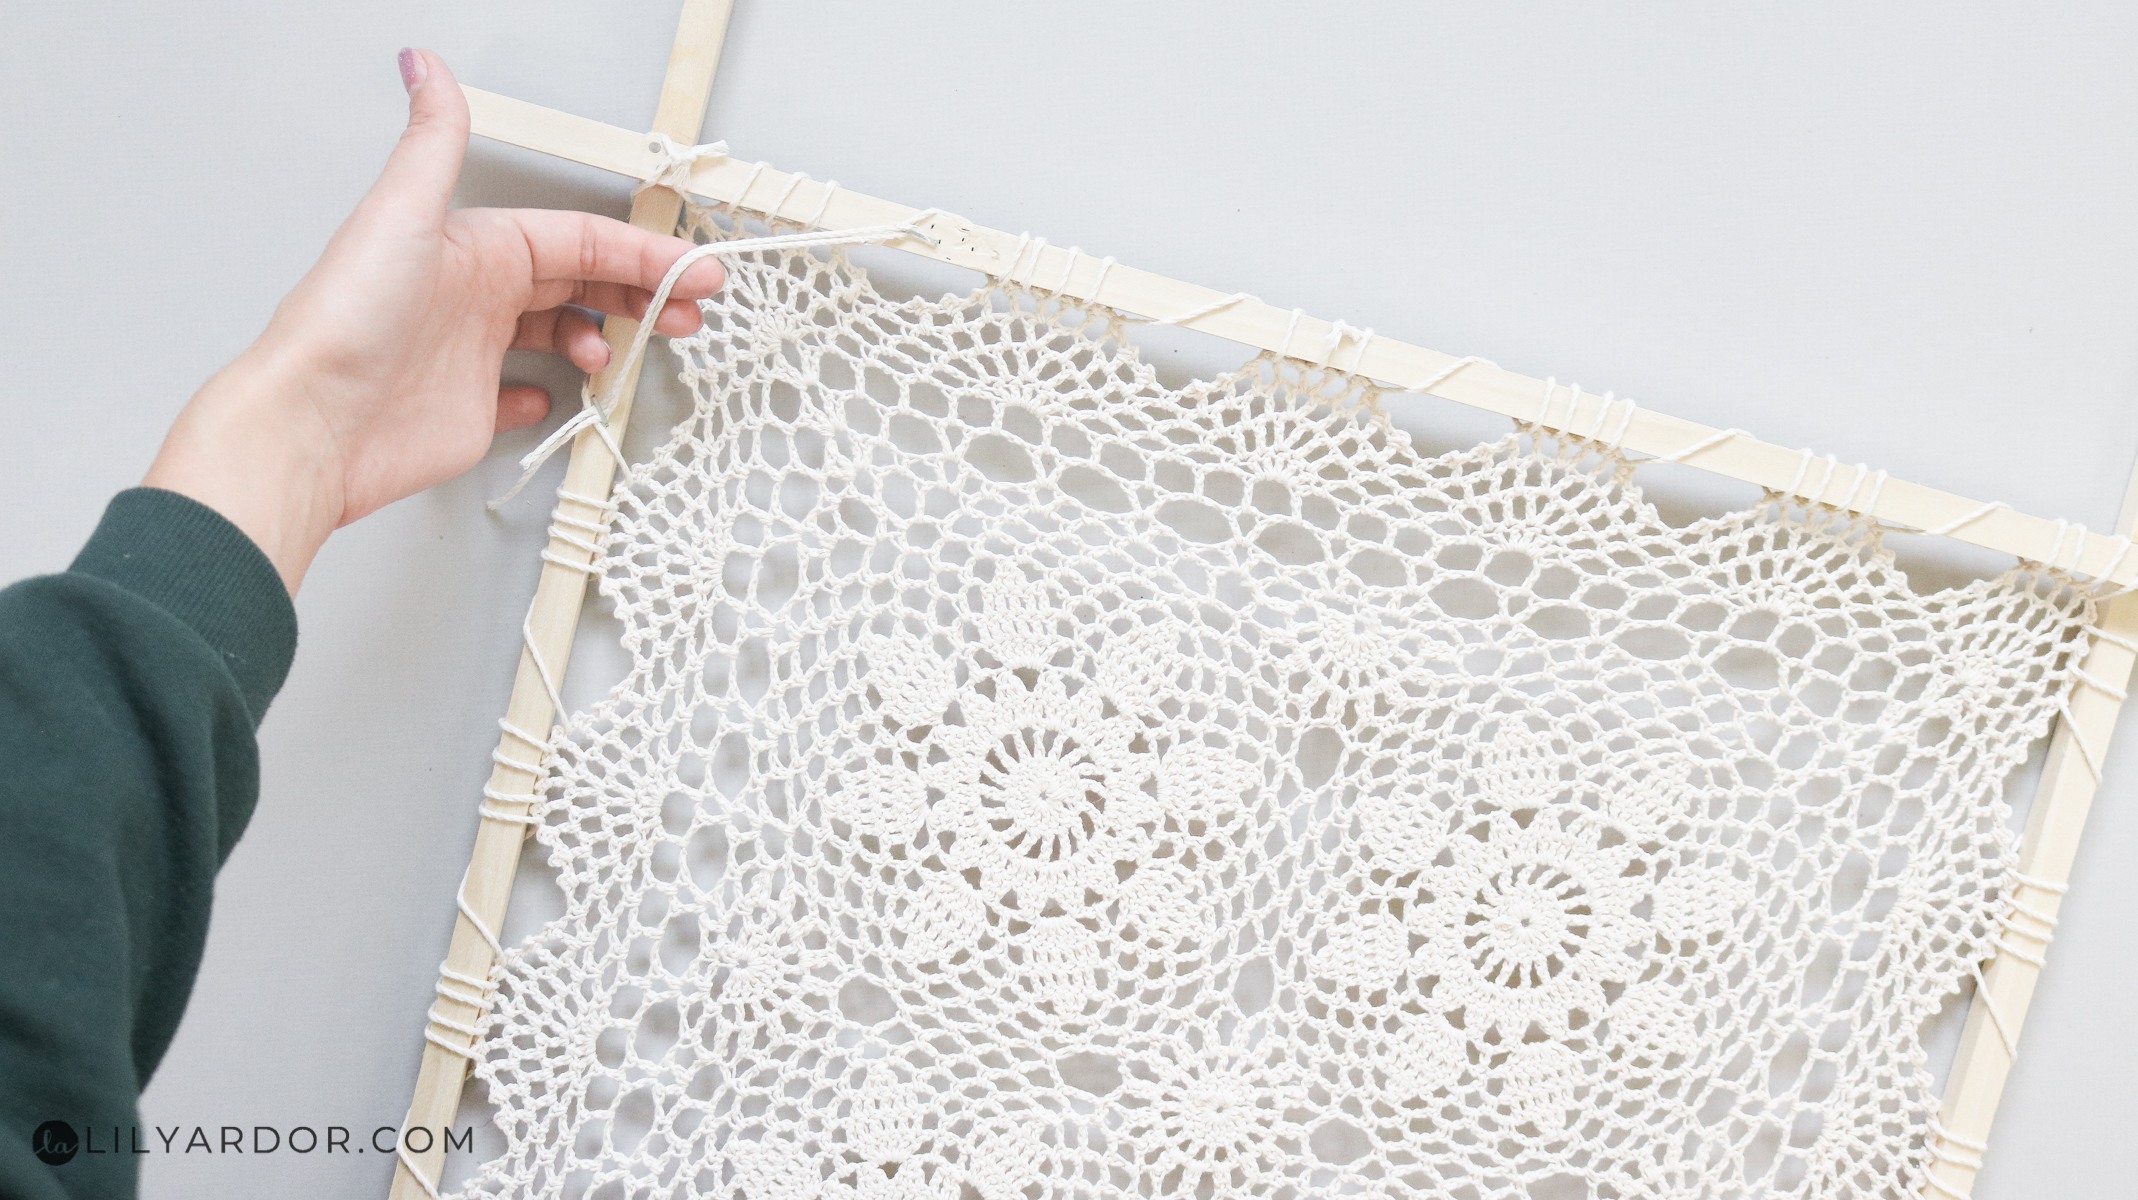 attaching the doily to the frame